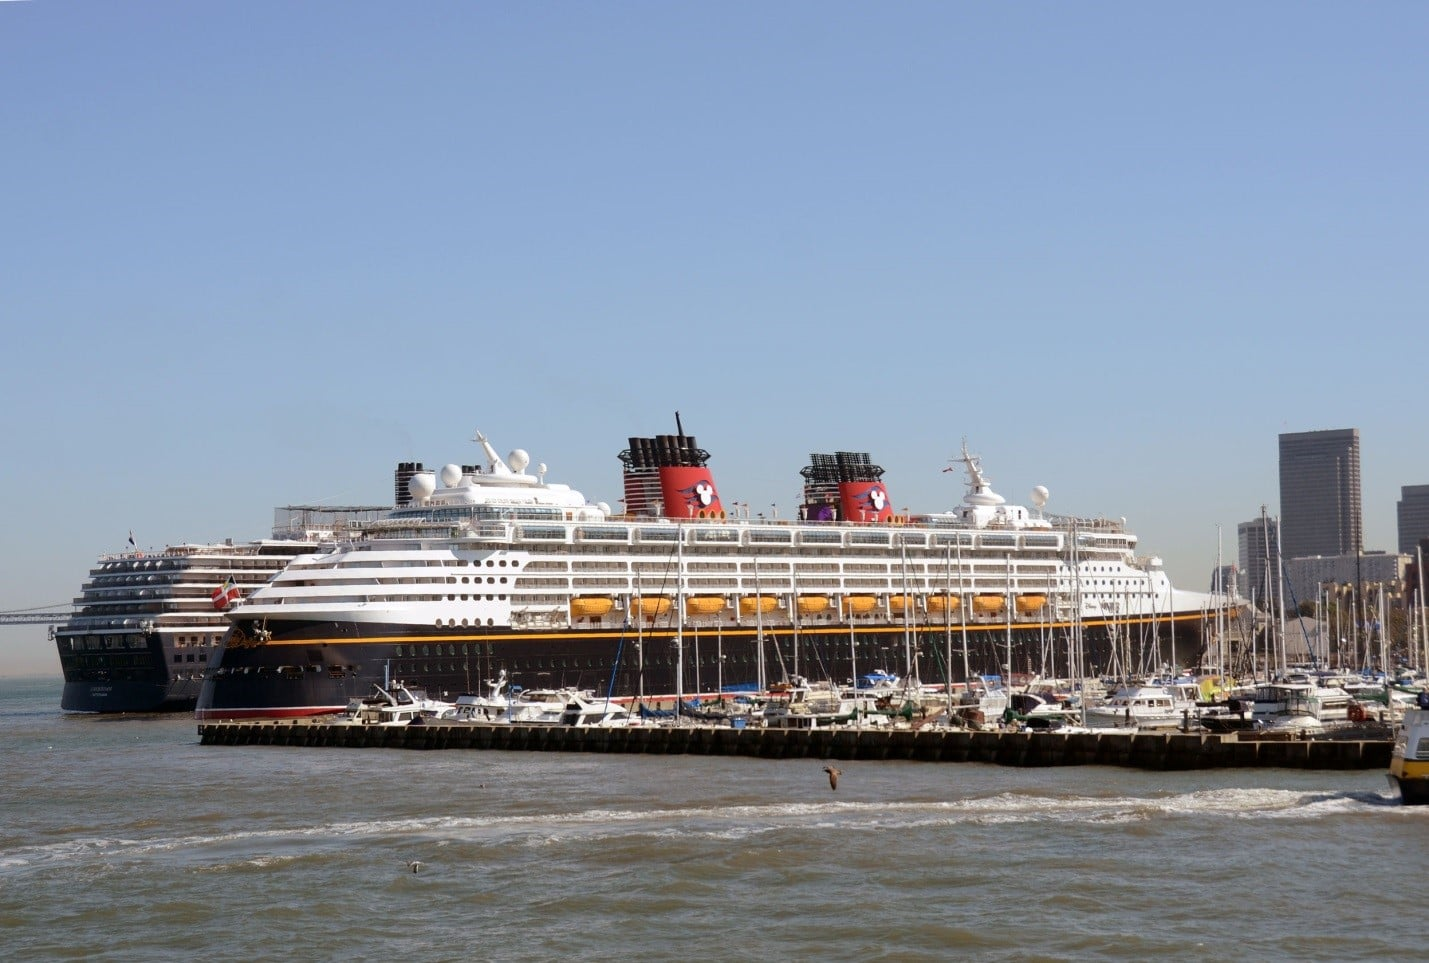 How Did Man on Disney Cruise Get Injured?